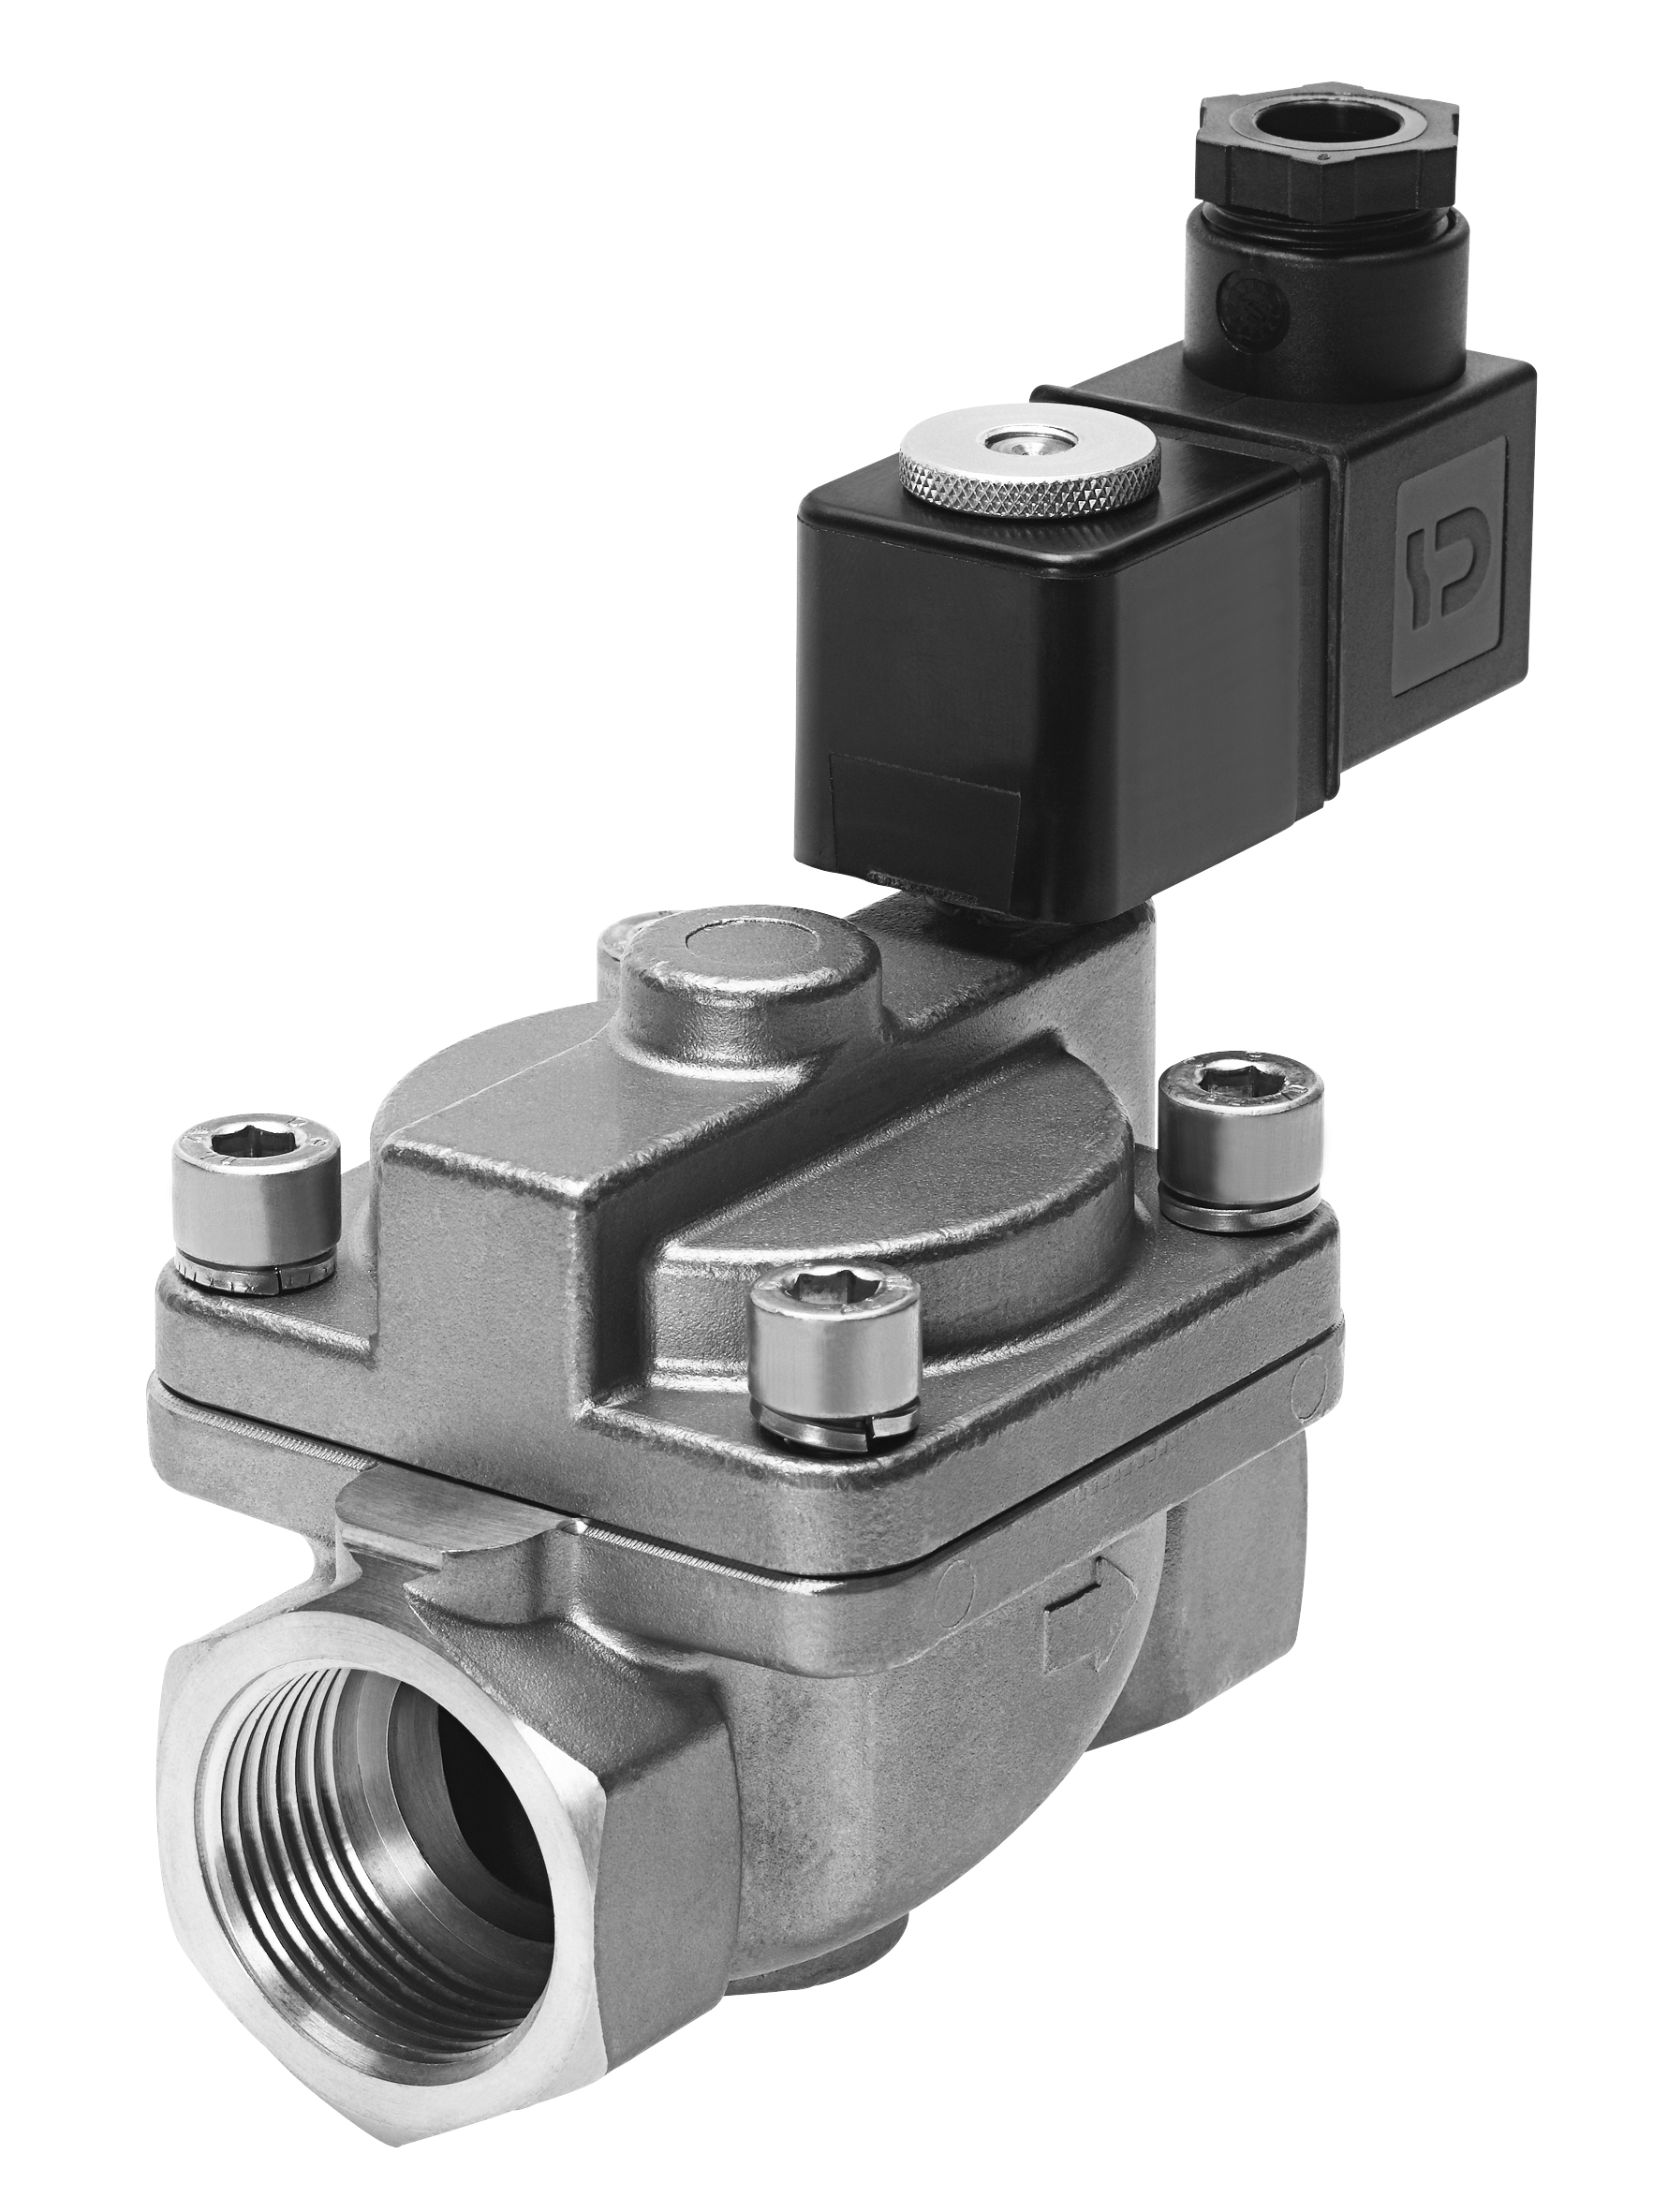 Festo Introduces The Vzwp An Up To 40 Bar Servo